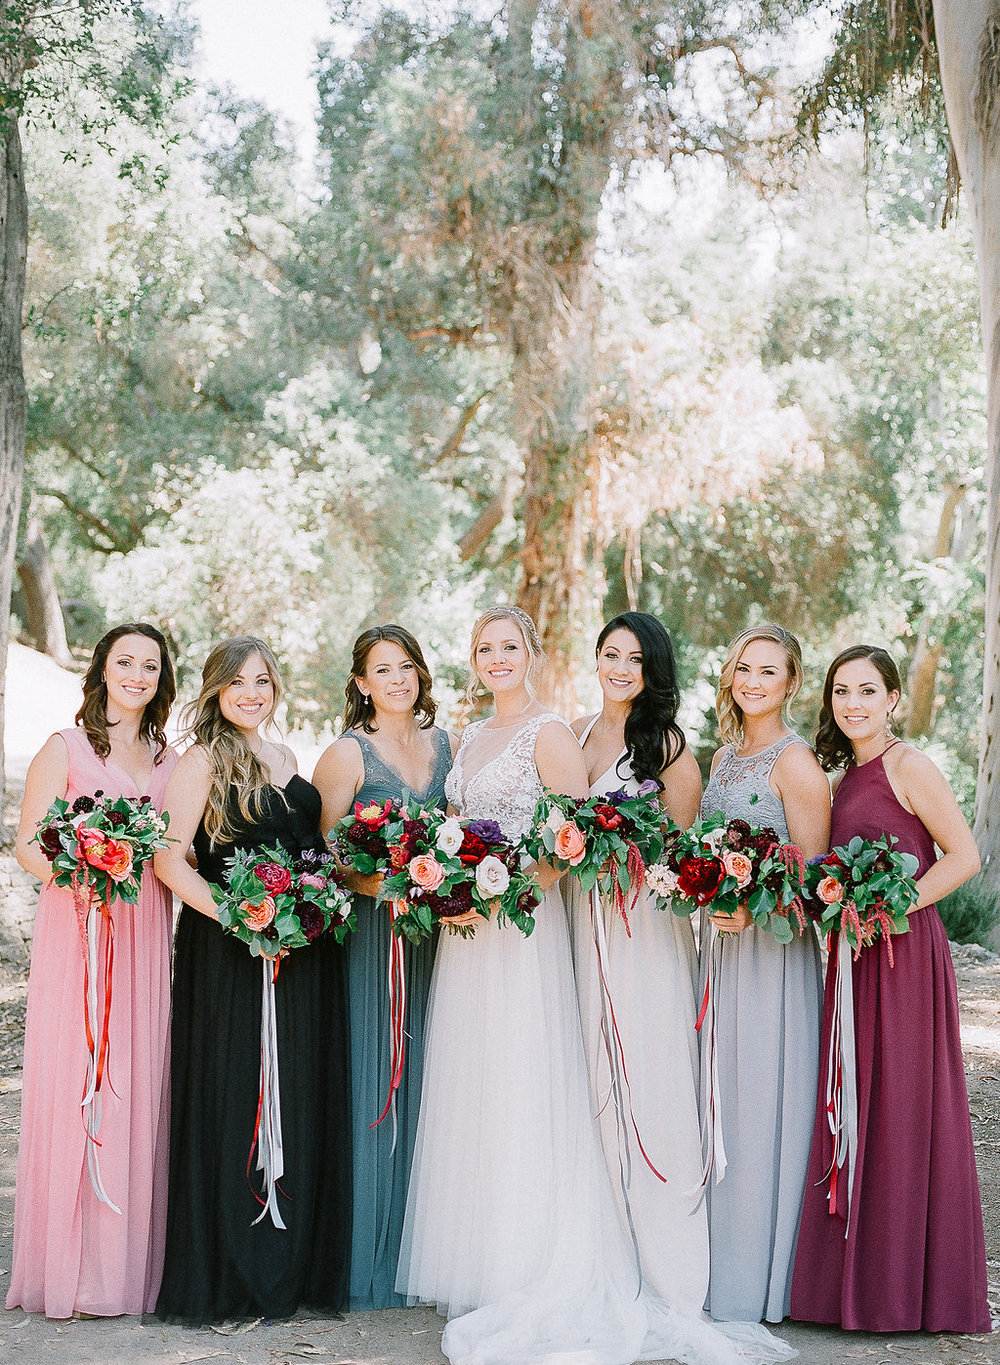 Mismatched bridesmaid dresses with jewel tone bouquets and trailing ribbons by Compass Floral | Fallbrook Treehouse, Fallbrook